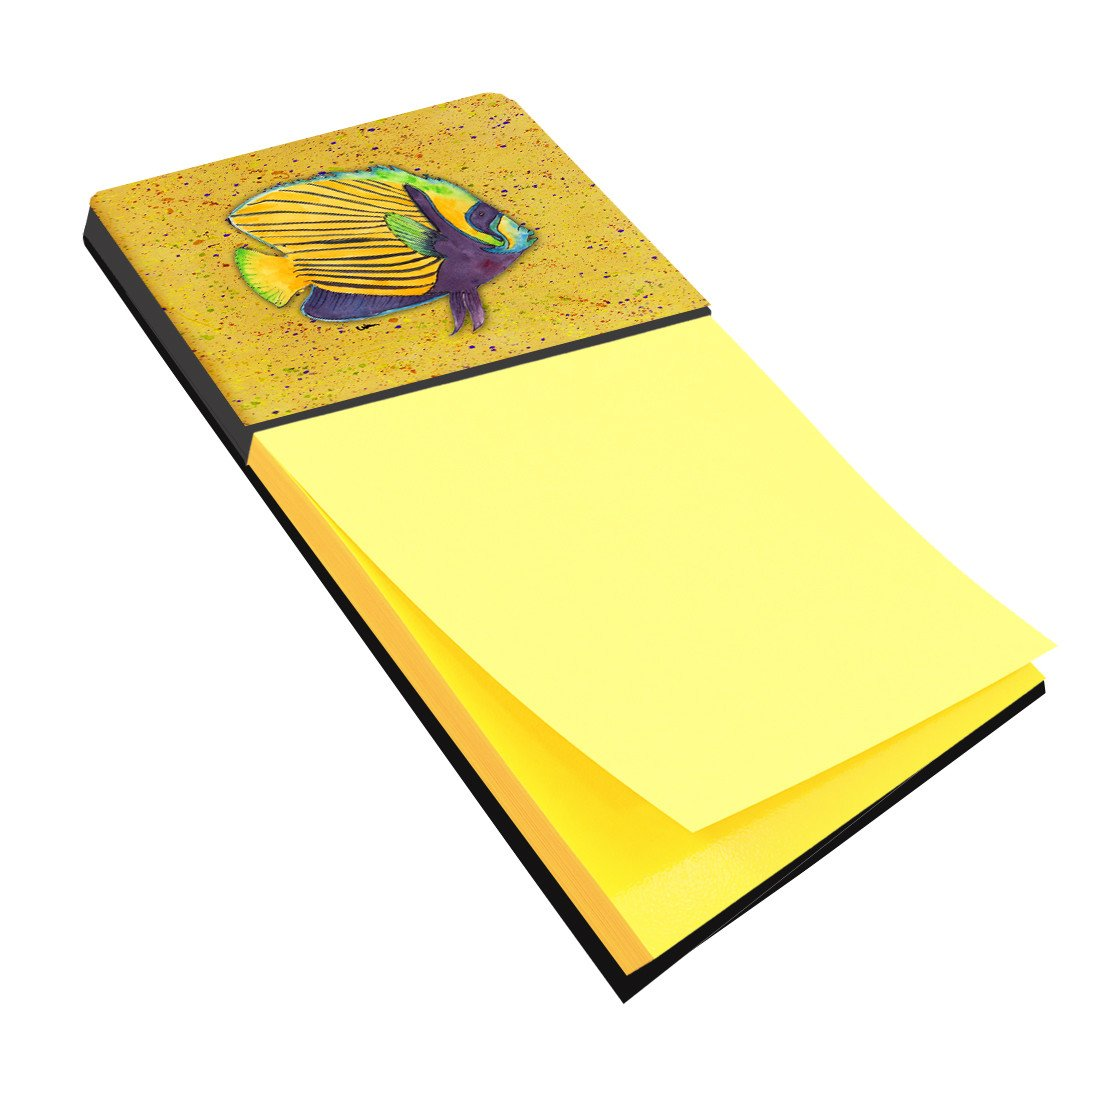 Tropical Fish on Mustard Refiillable Sticky Note Holder or Postit Note Dispenser 8577SN by Caroline's Treasures